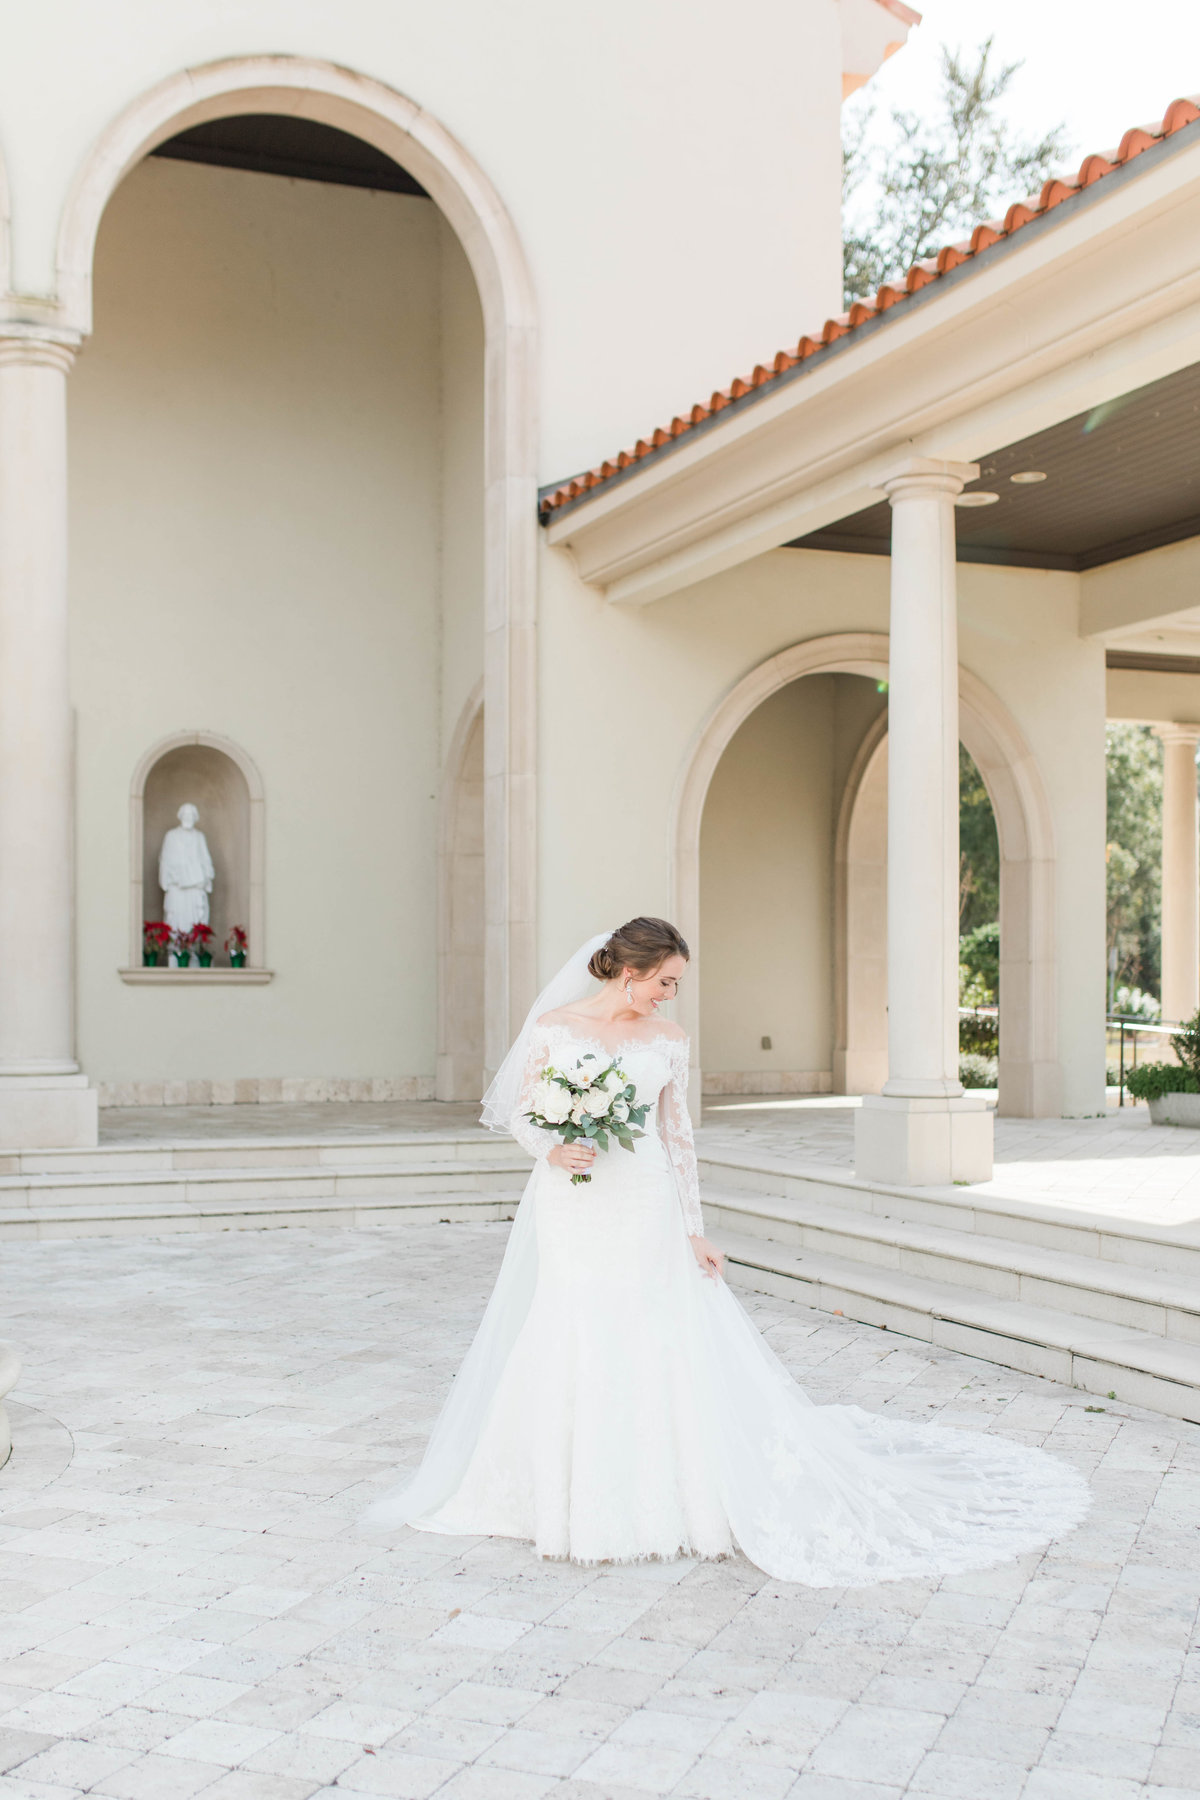 Leslie Page Photography - Central Florida Photographer - Tampa, Orlando, Gainesville, St. Augustine Wedding and Portrait Photographer - 21